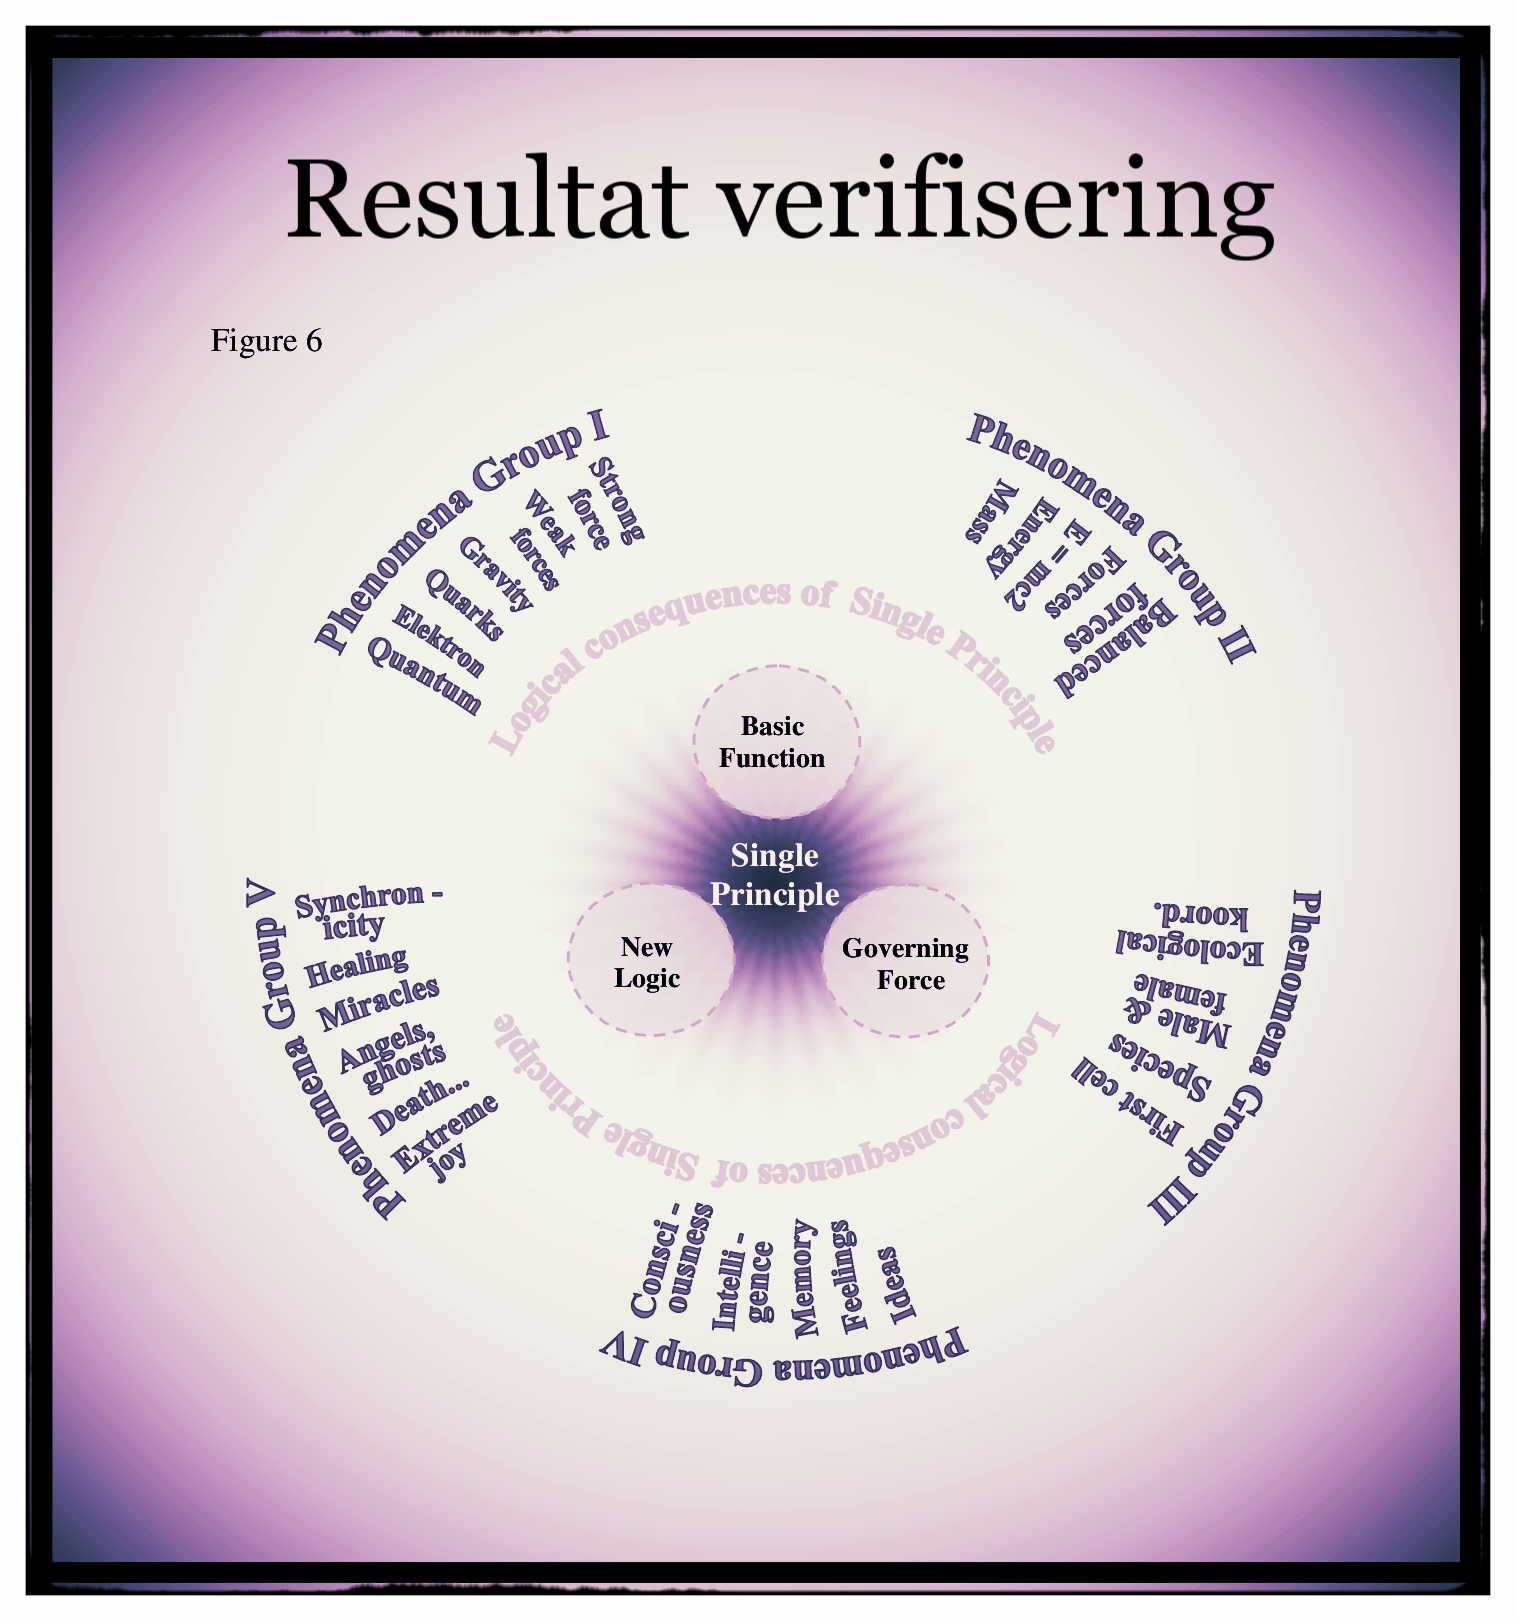 Result verifisering